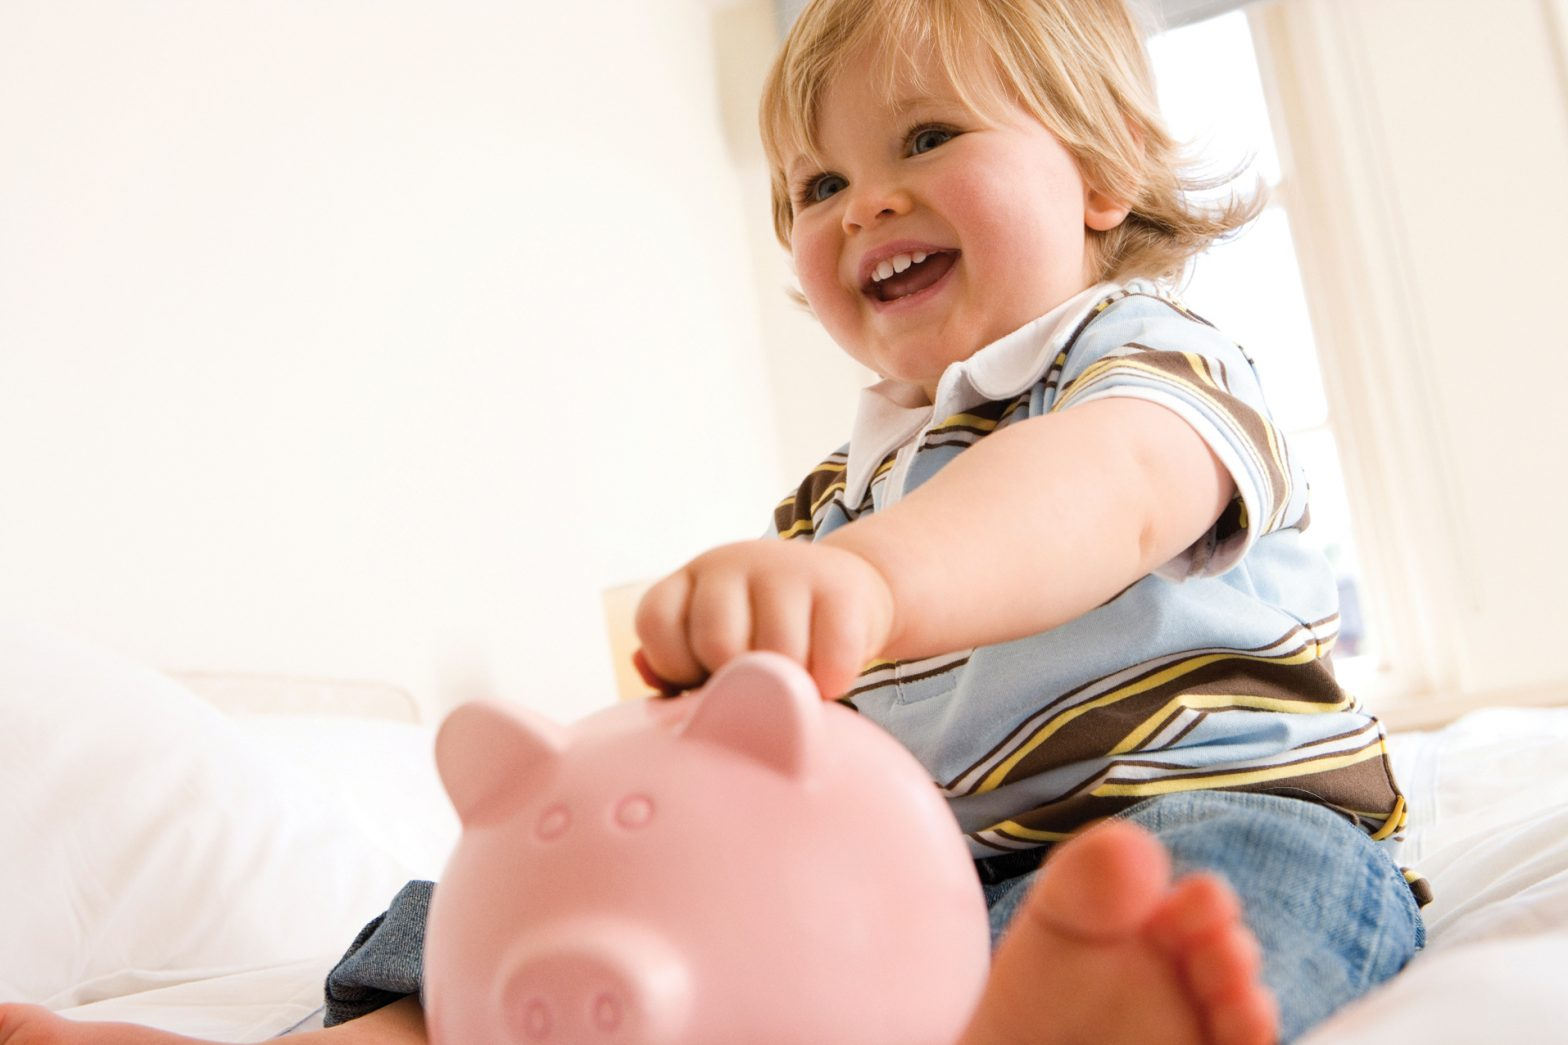 get rebates of up to $1,650 on qualifying Carrier systems with Carrier's Cool Cash.